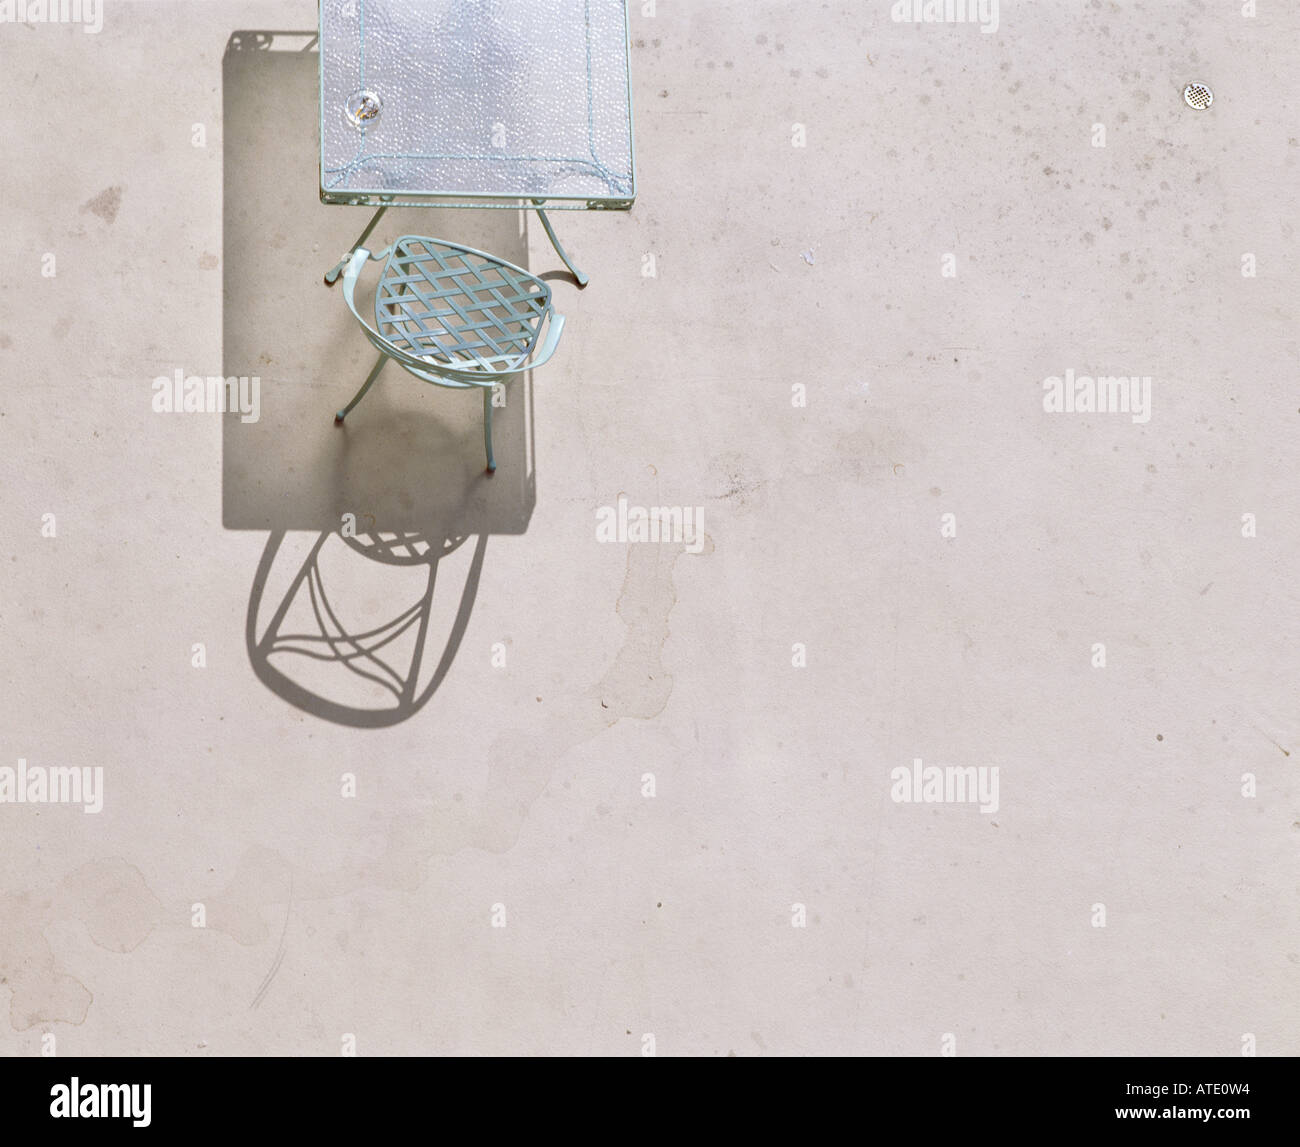 Chair, floor, aerial, summer, light, table, glass, - Stock Image